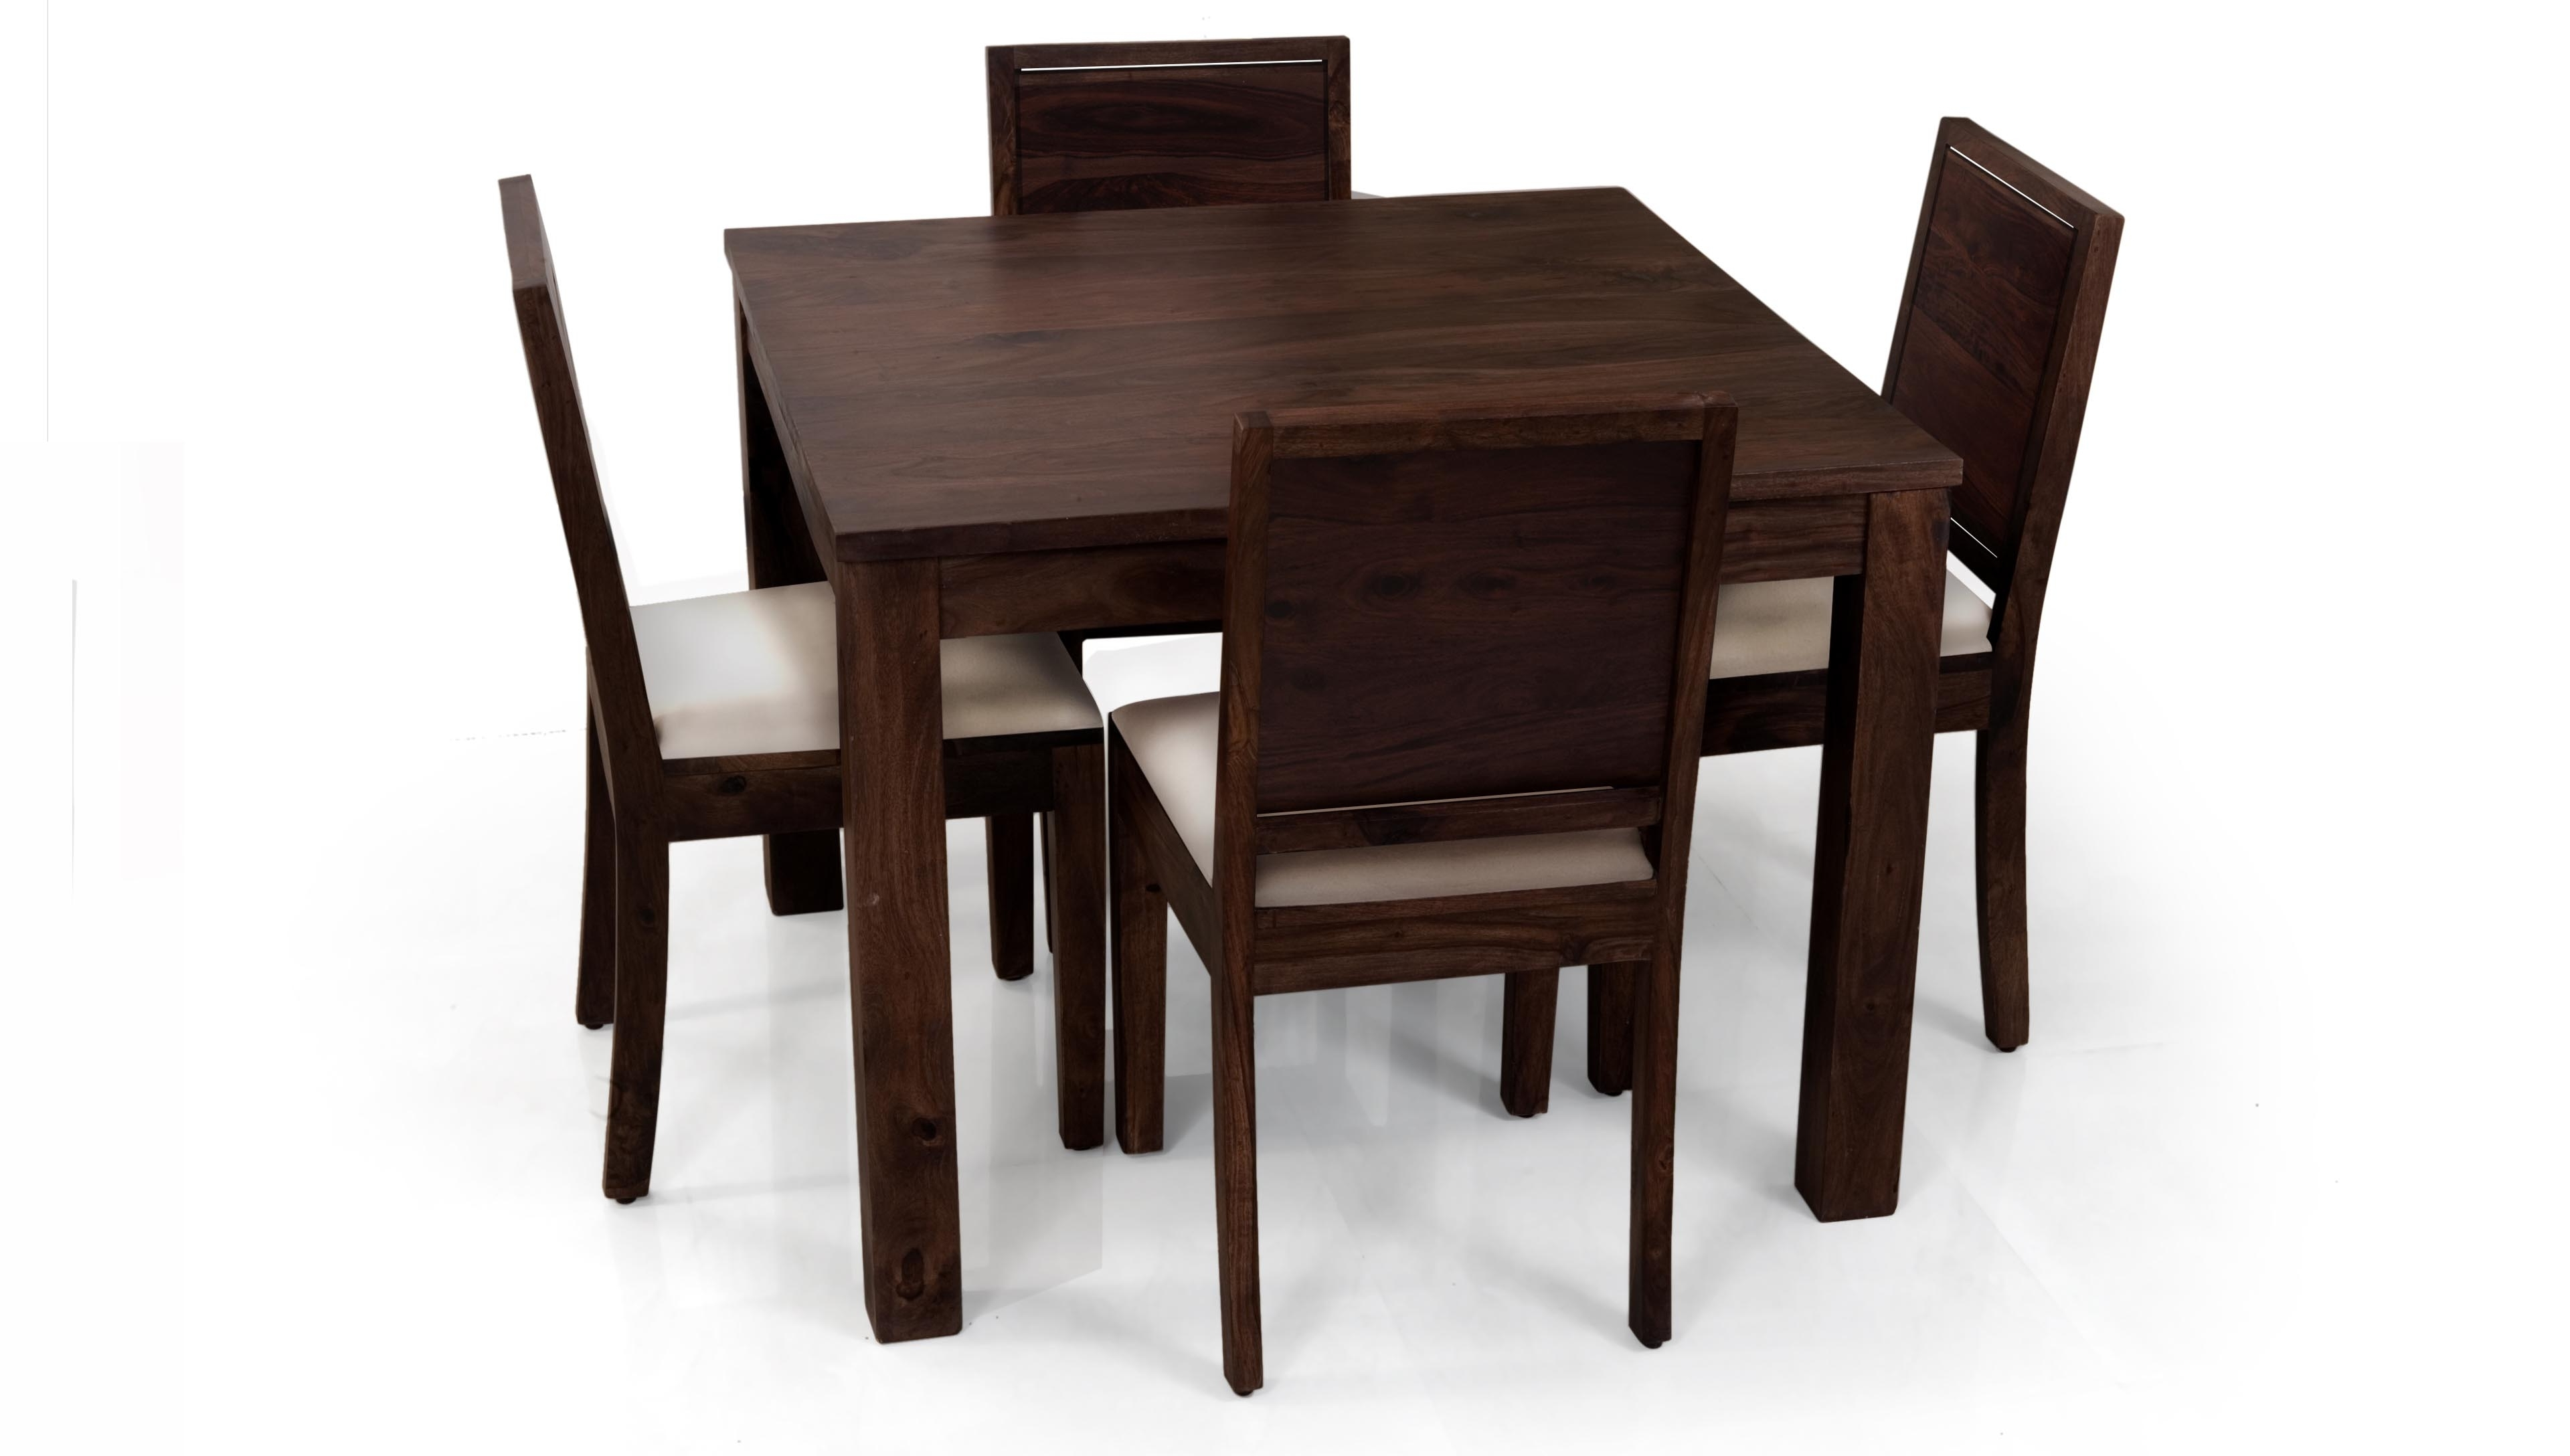 5 Piece Dining Table Set 4 Chairs Wood Kitchen Dinette Solid Oak Intended For Widely Used Small Dark Wood Dining Tables (View 2 of 25)